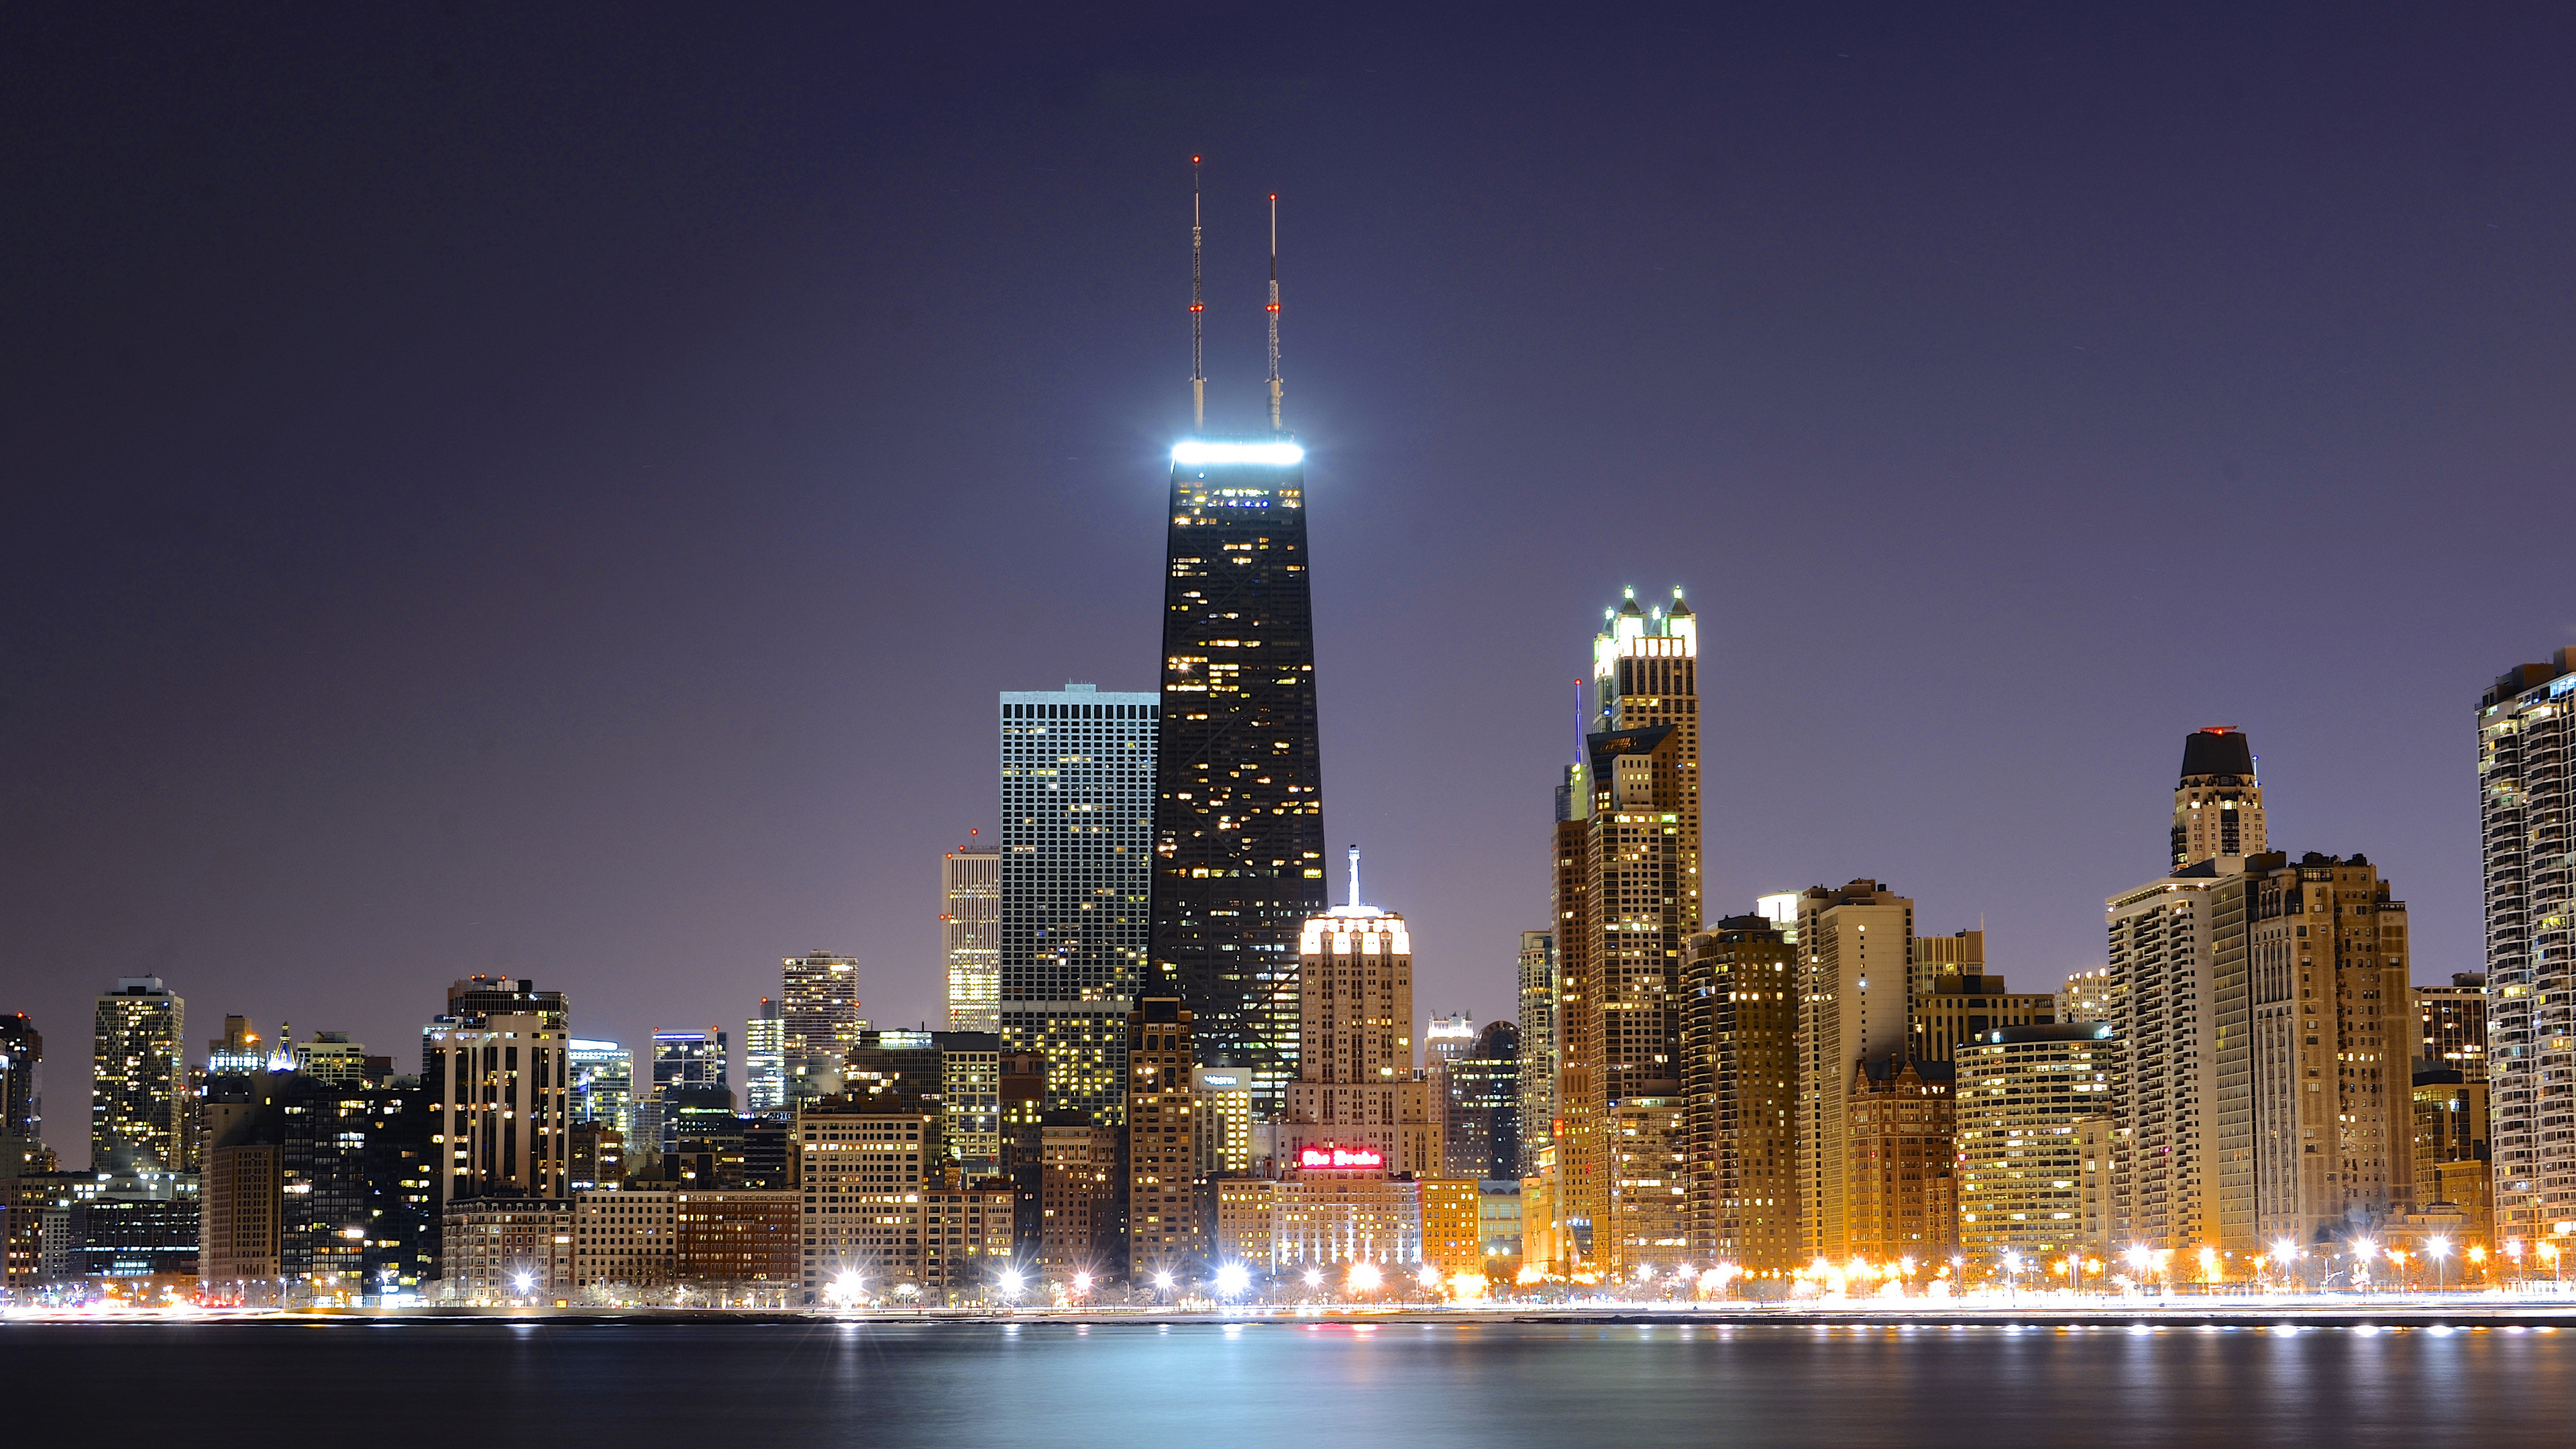 Chicago wallpapers 3840x2160 ultra hd 4k desktop backgrounds - Desktop wallpaper 4k ...